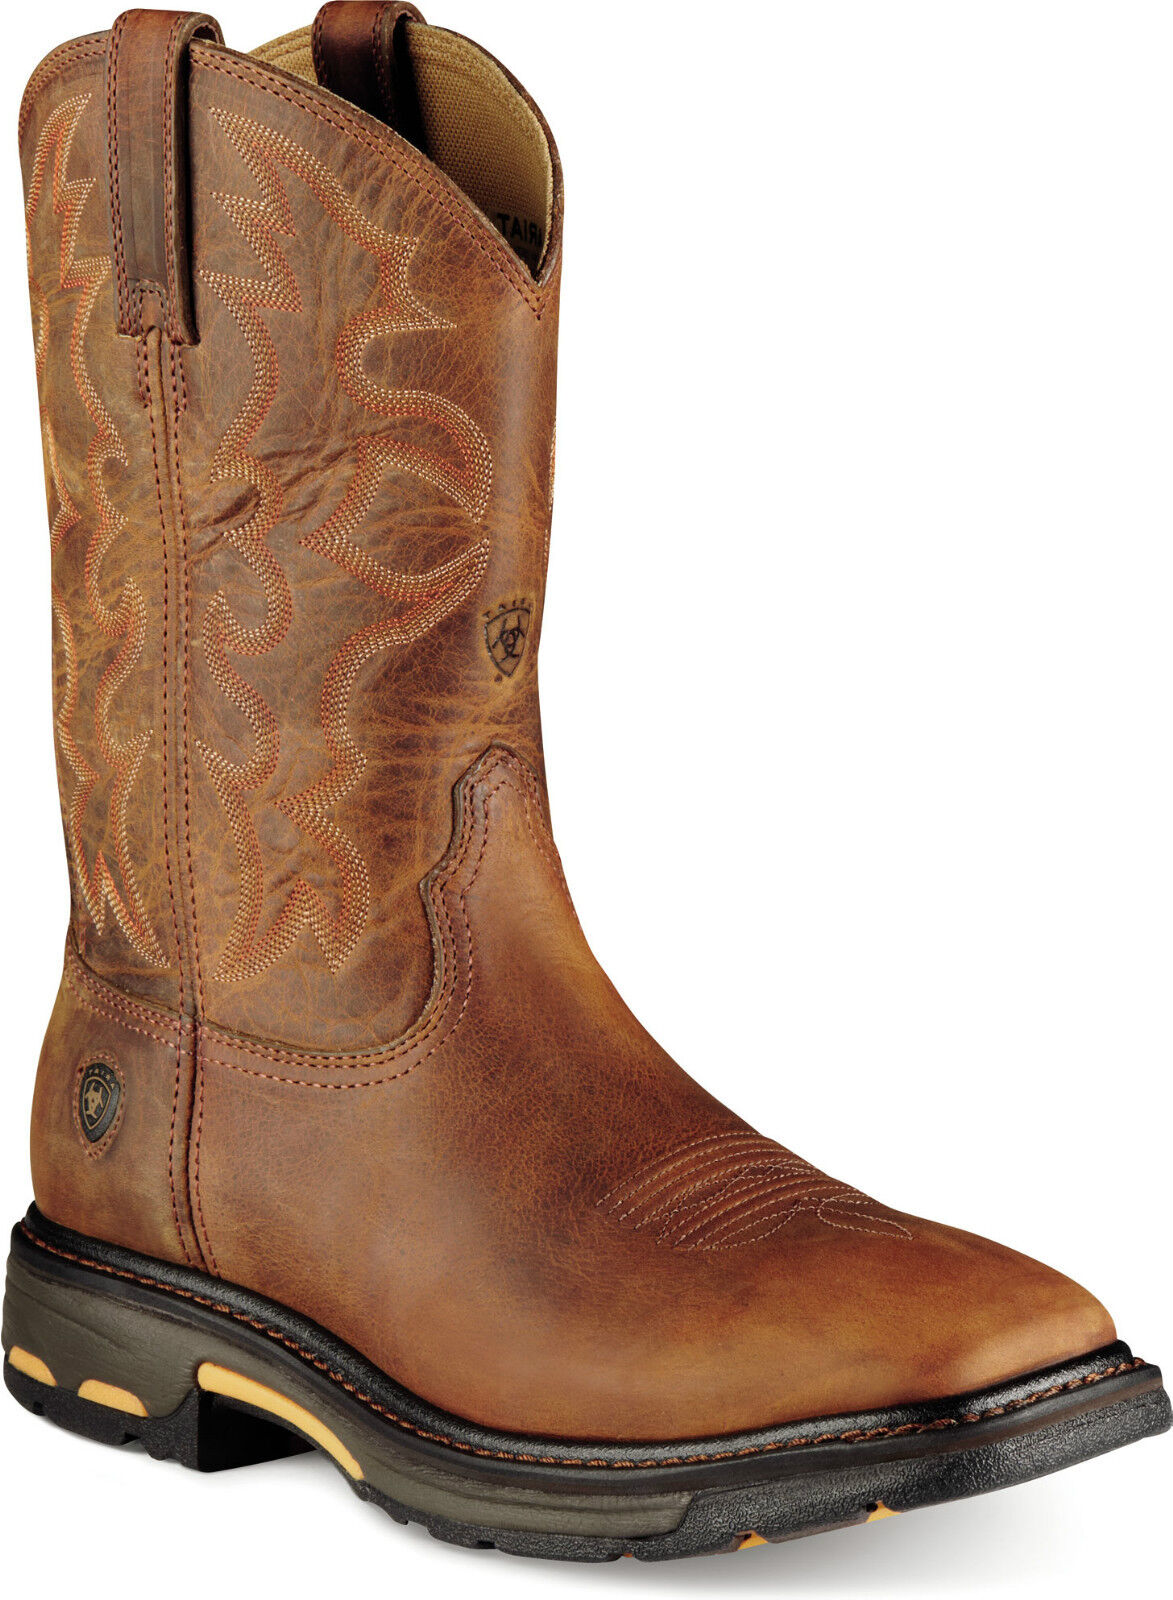 NEW MENS ARIAT WORKHOG COWBOY WESTERN WORK BOOTS! 10007043~